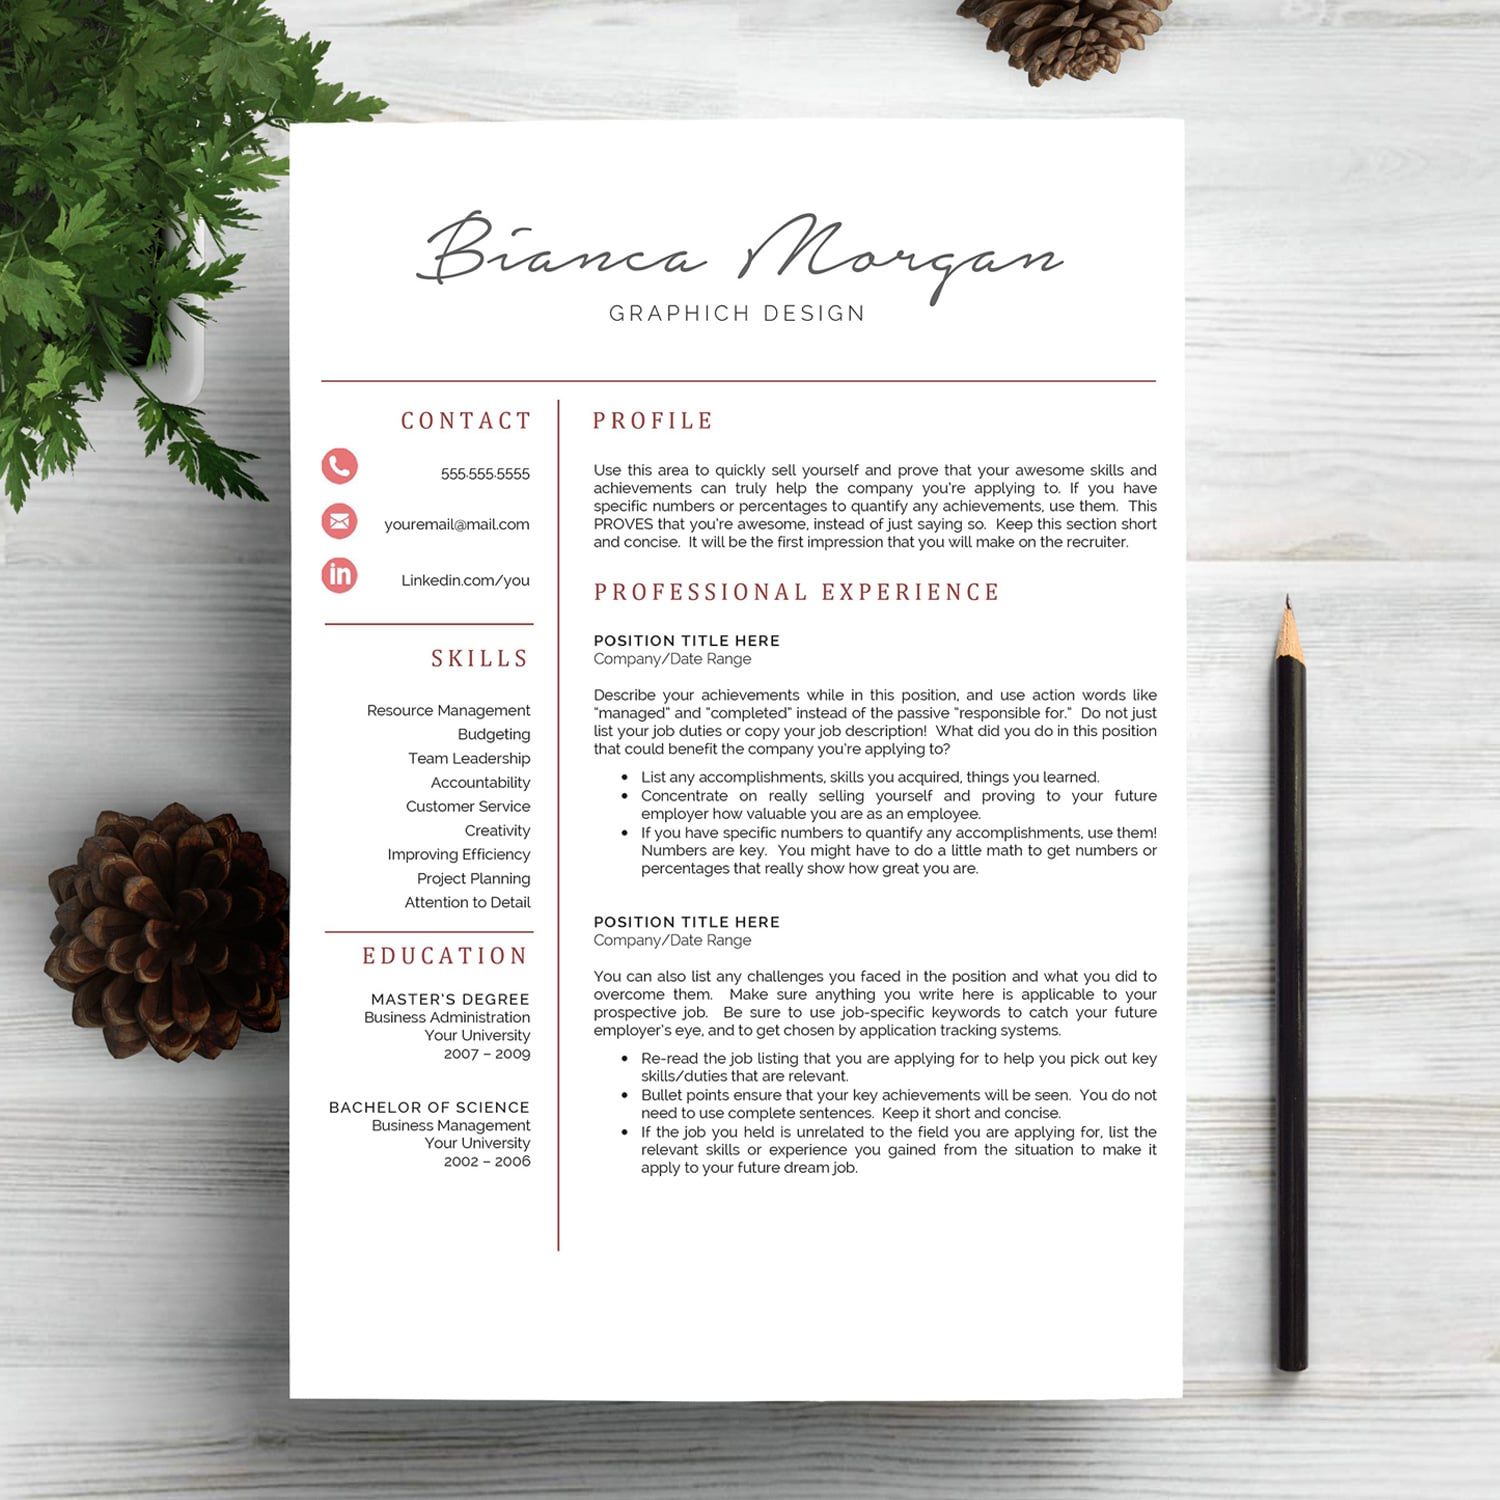 6 Best Clean Resume CV Templates in 2020 - page 1 1